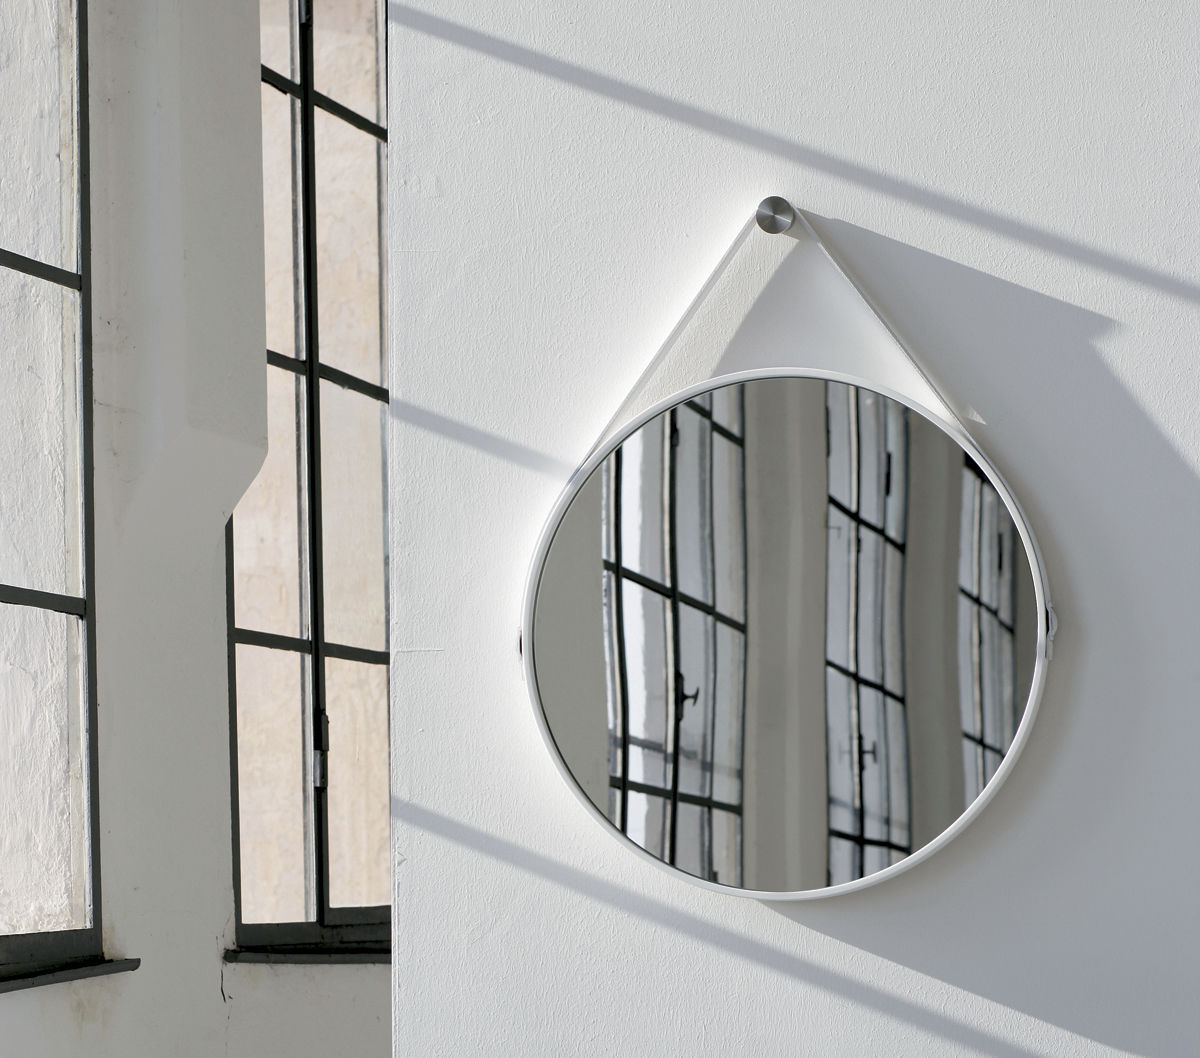 Wall mounted mirror contemporary round leather george 24in wall mounted mirror contemporary round leather george 24in george 36in amipublicfo Gallery